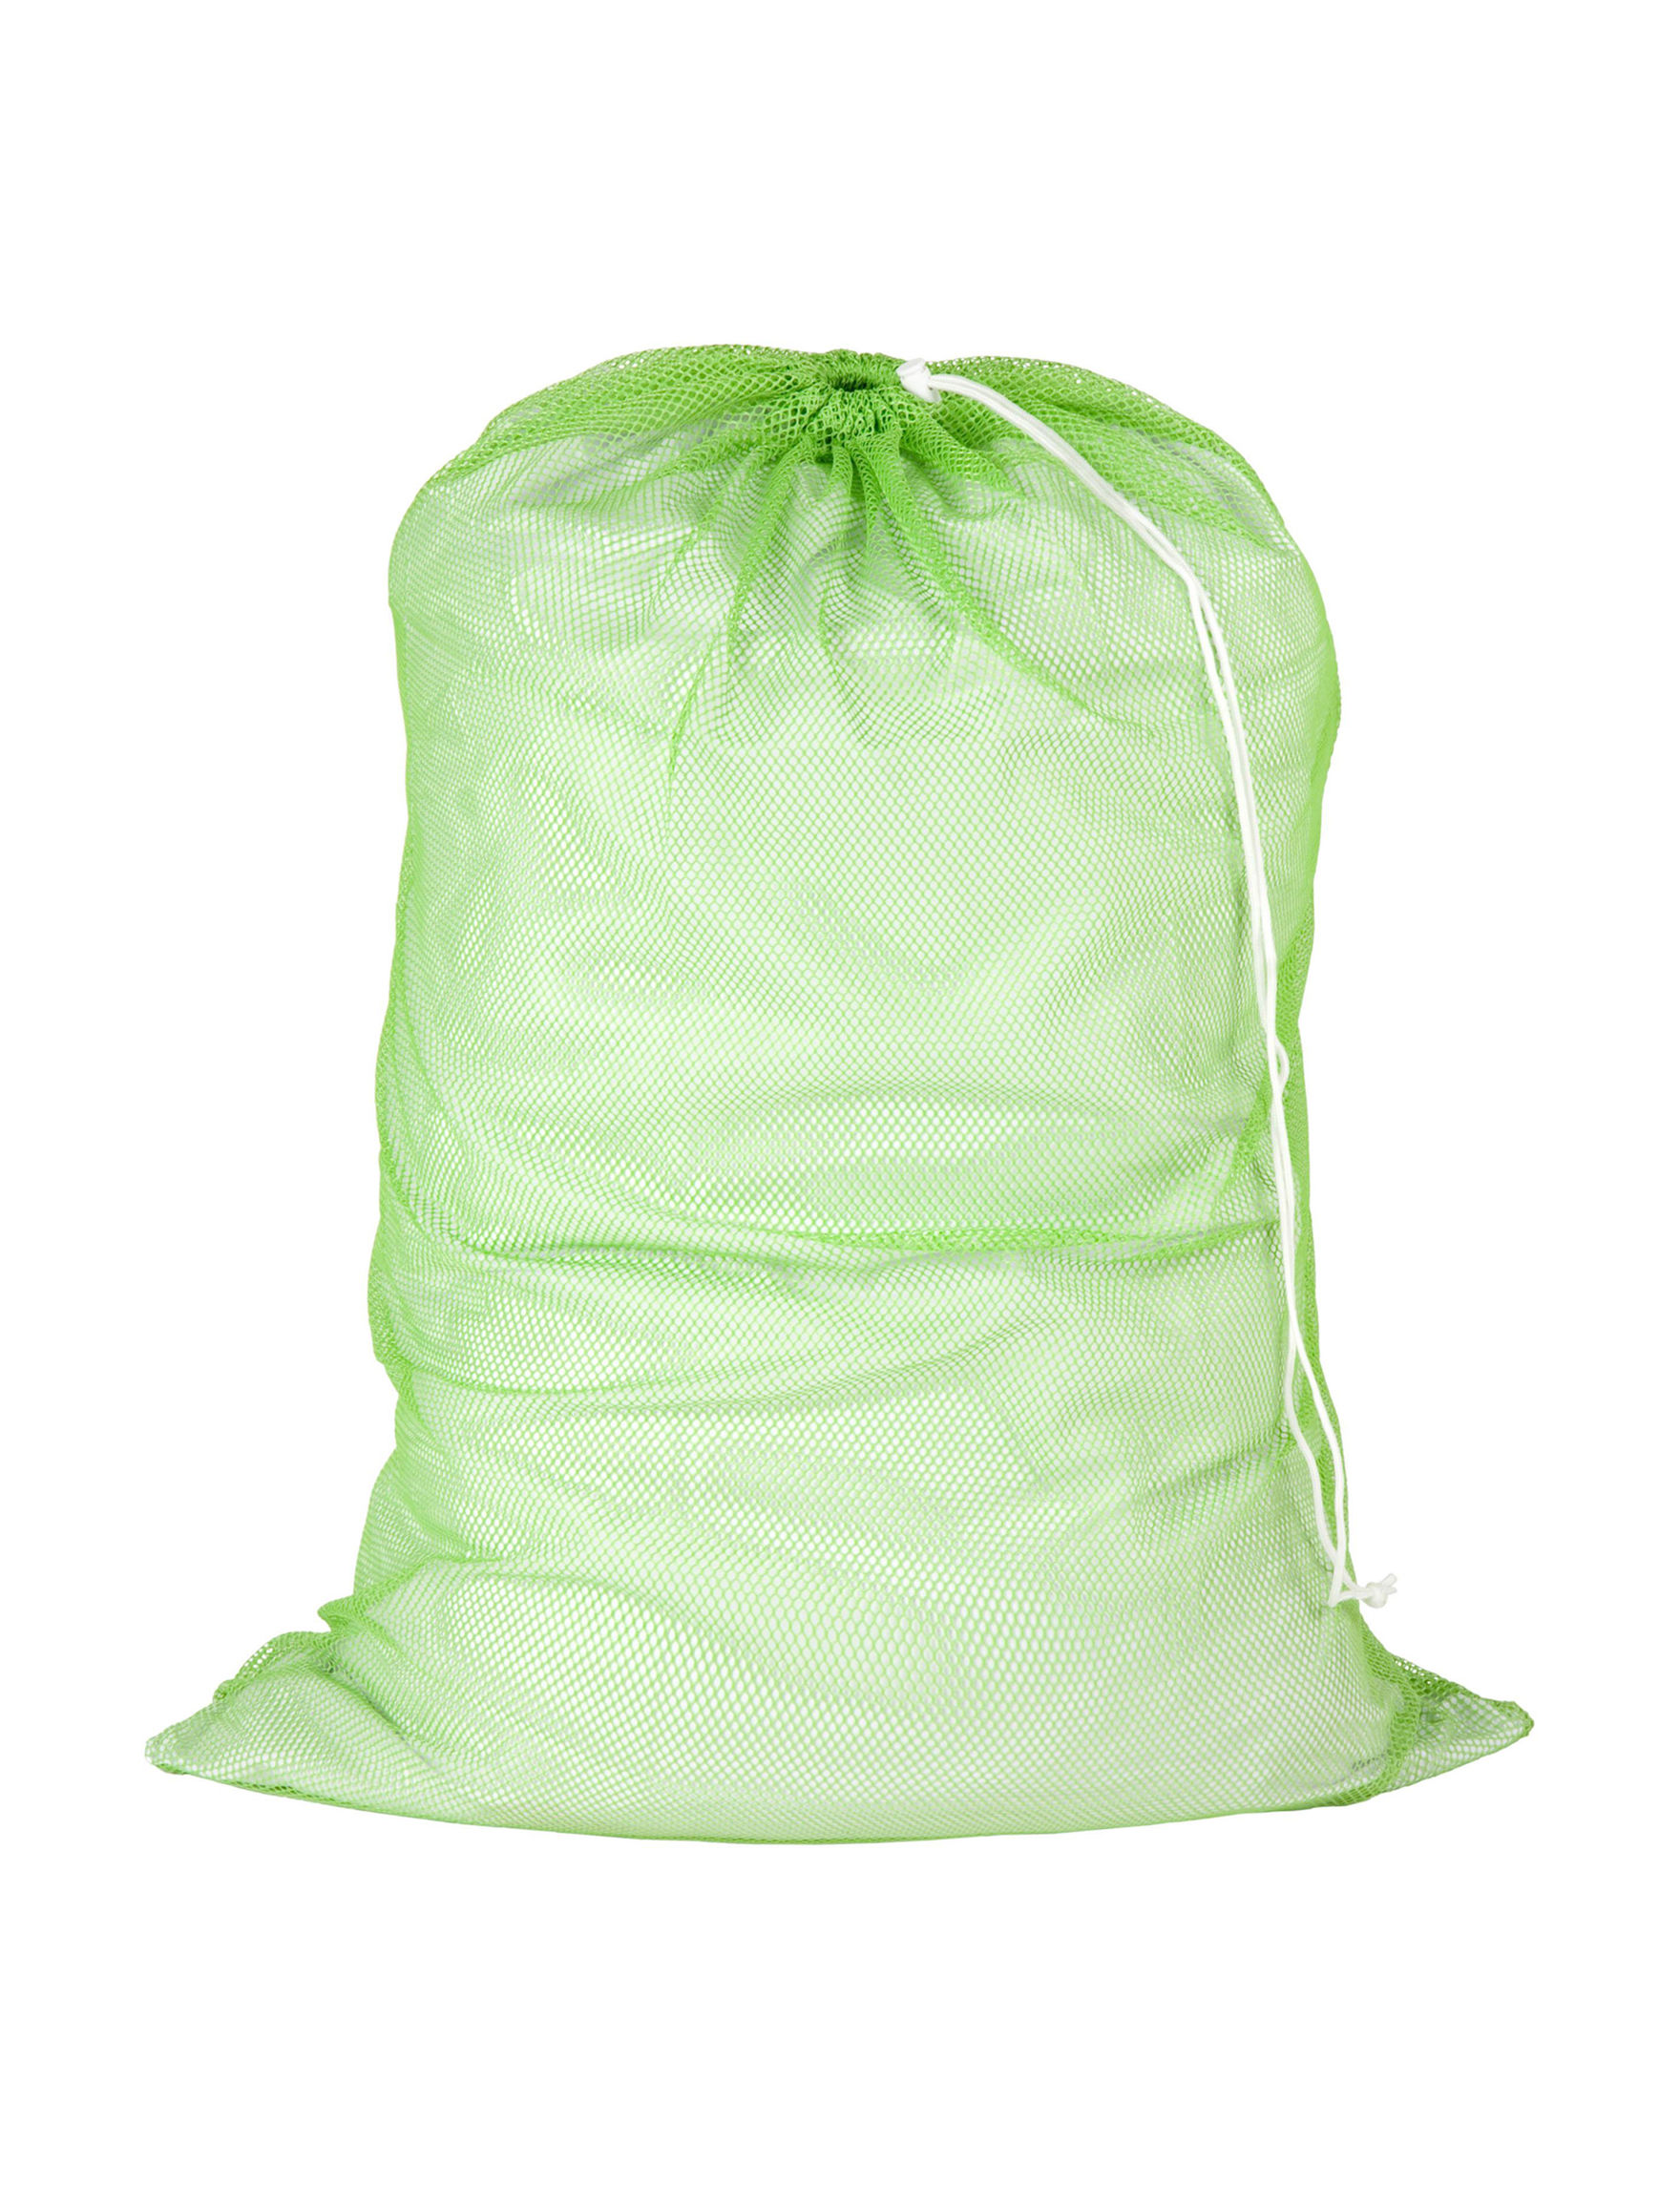 Honey-Can-Do International Green Garment & Drying Racks Storage Bags & Boxes Irons & Clothing Care